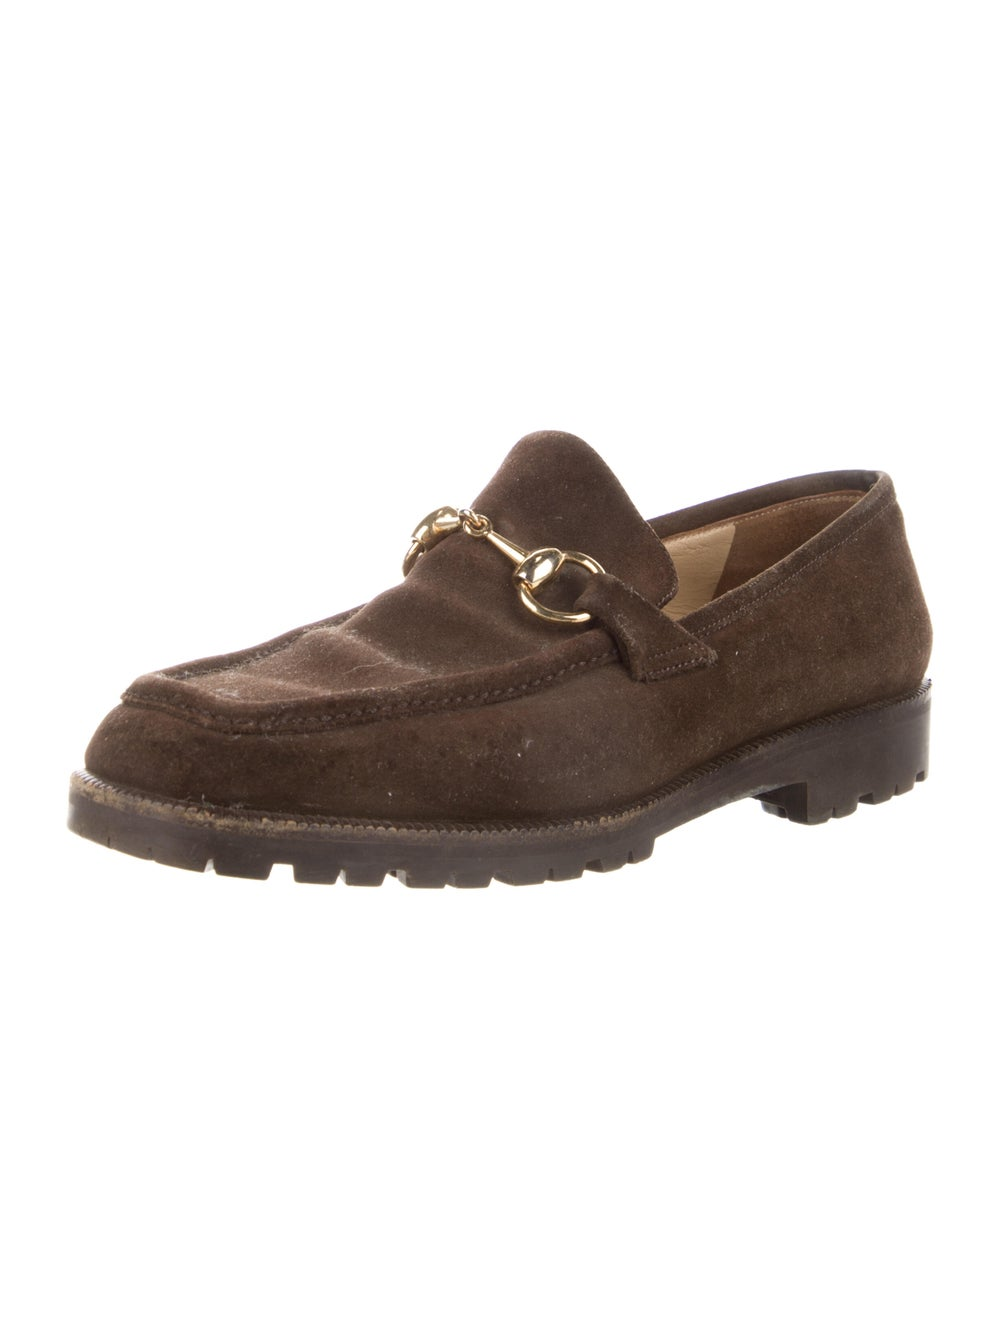 Gucci Horsebit Accent Suede Loafers Brown - image 2